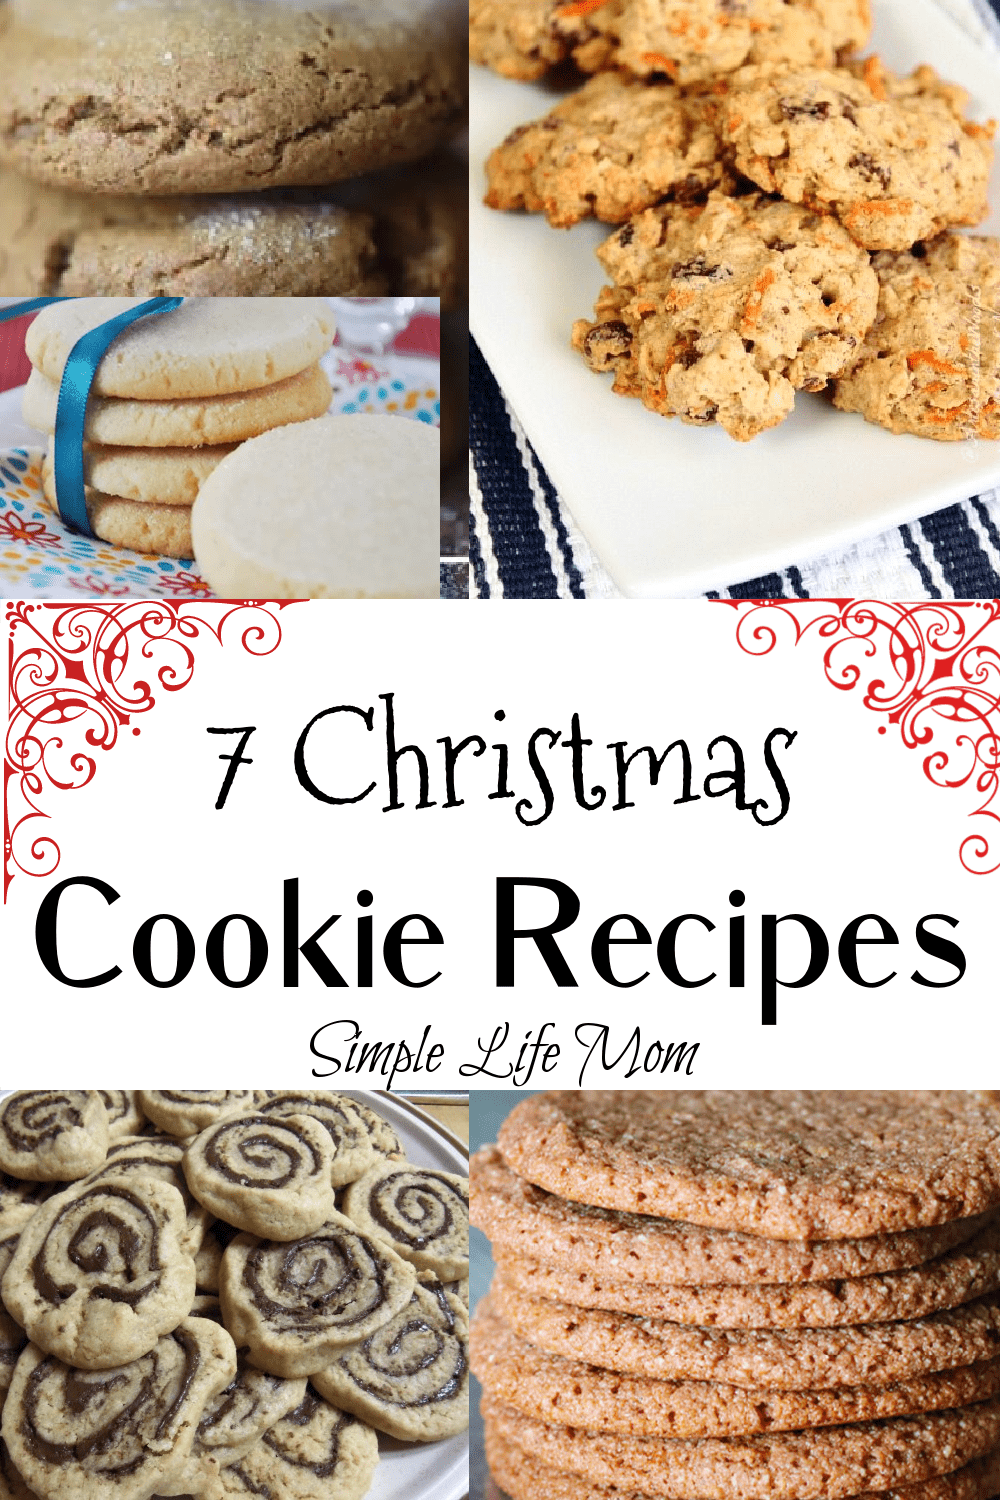 7 Christmas Cookie Recipes from Simple Life Mom